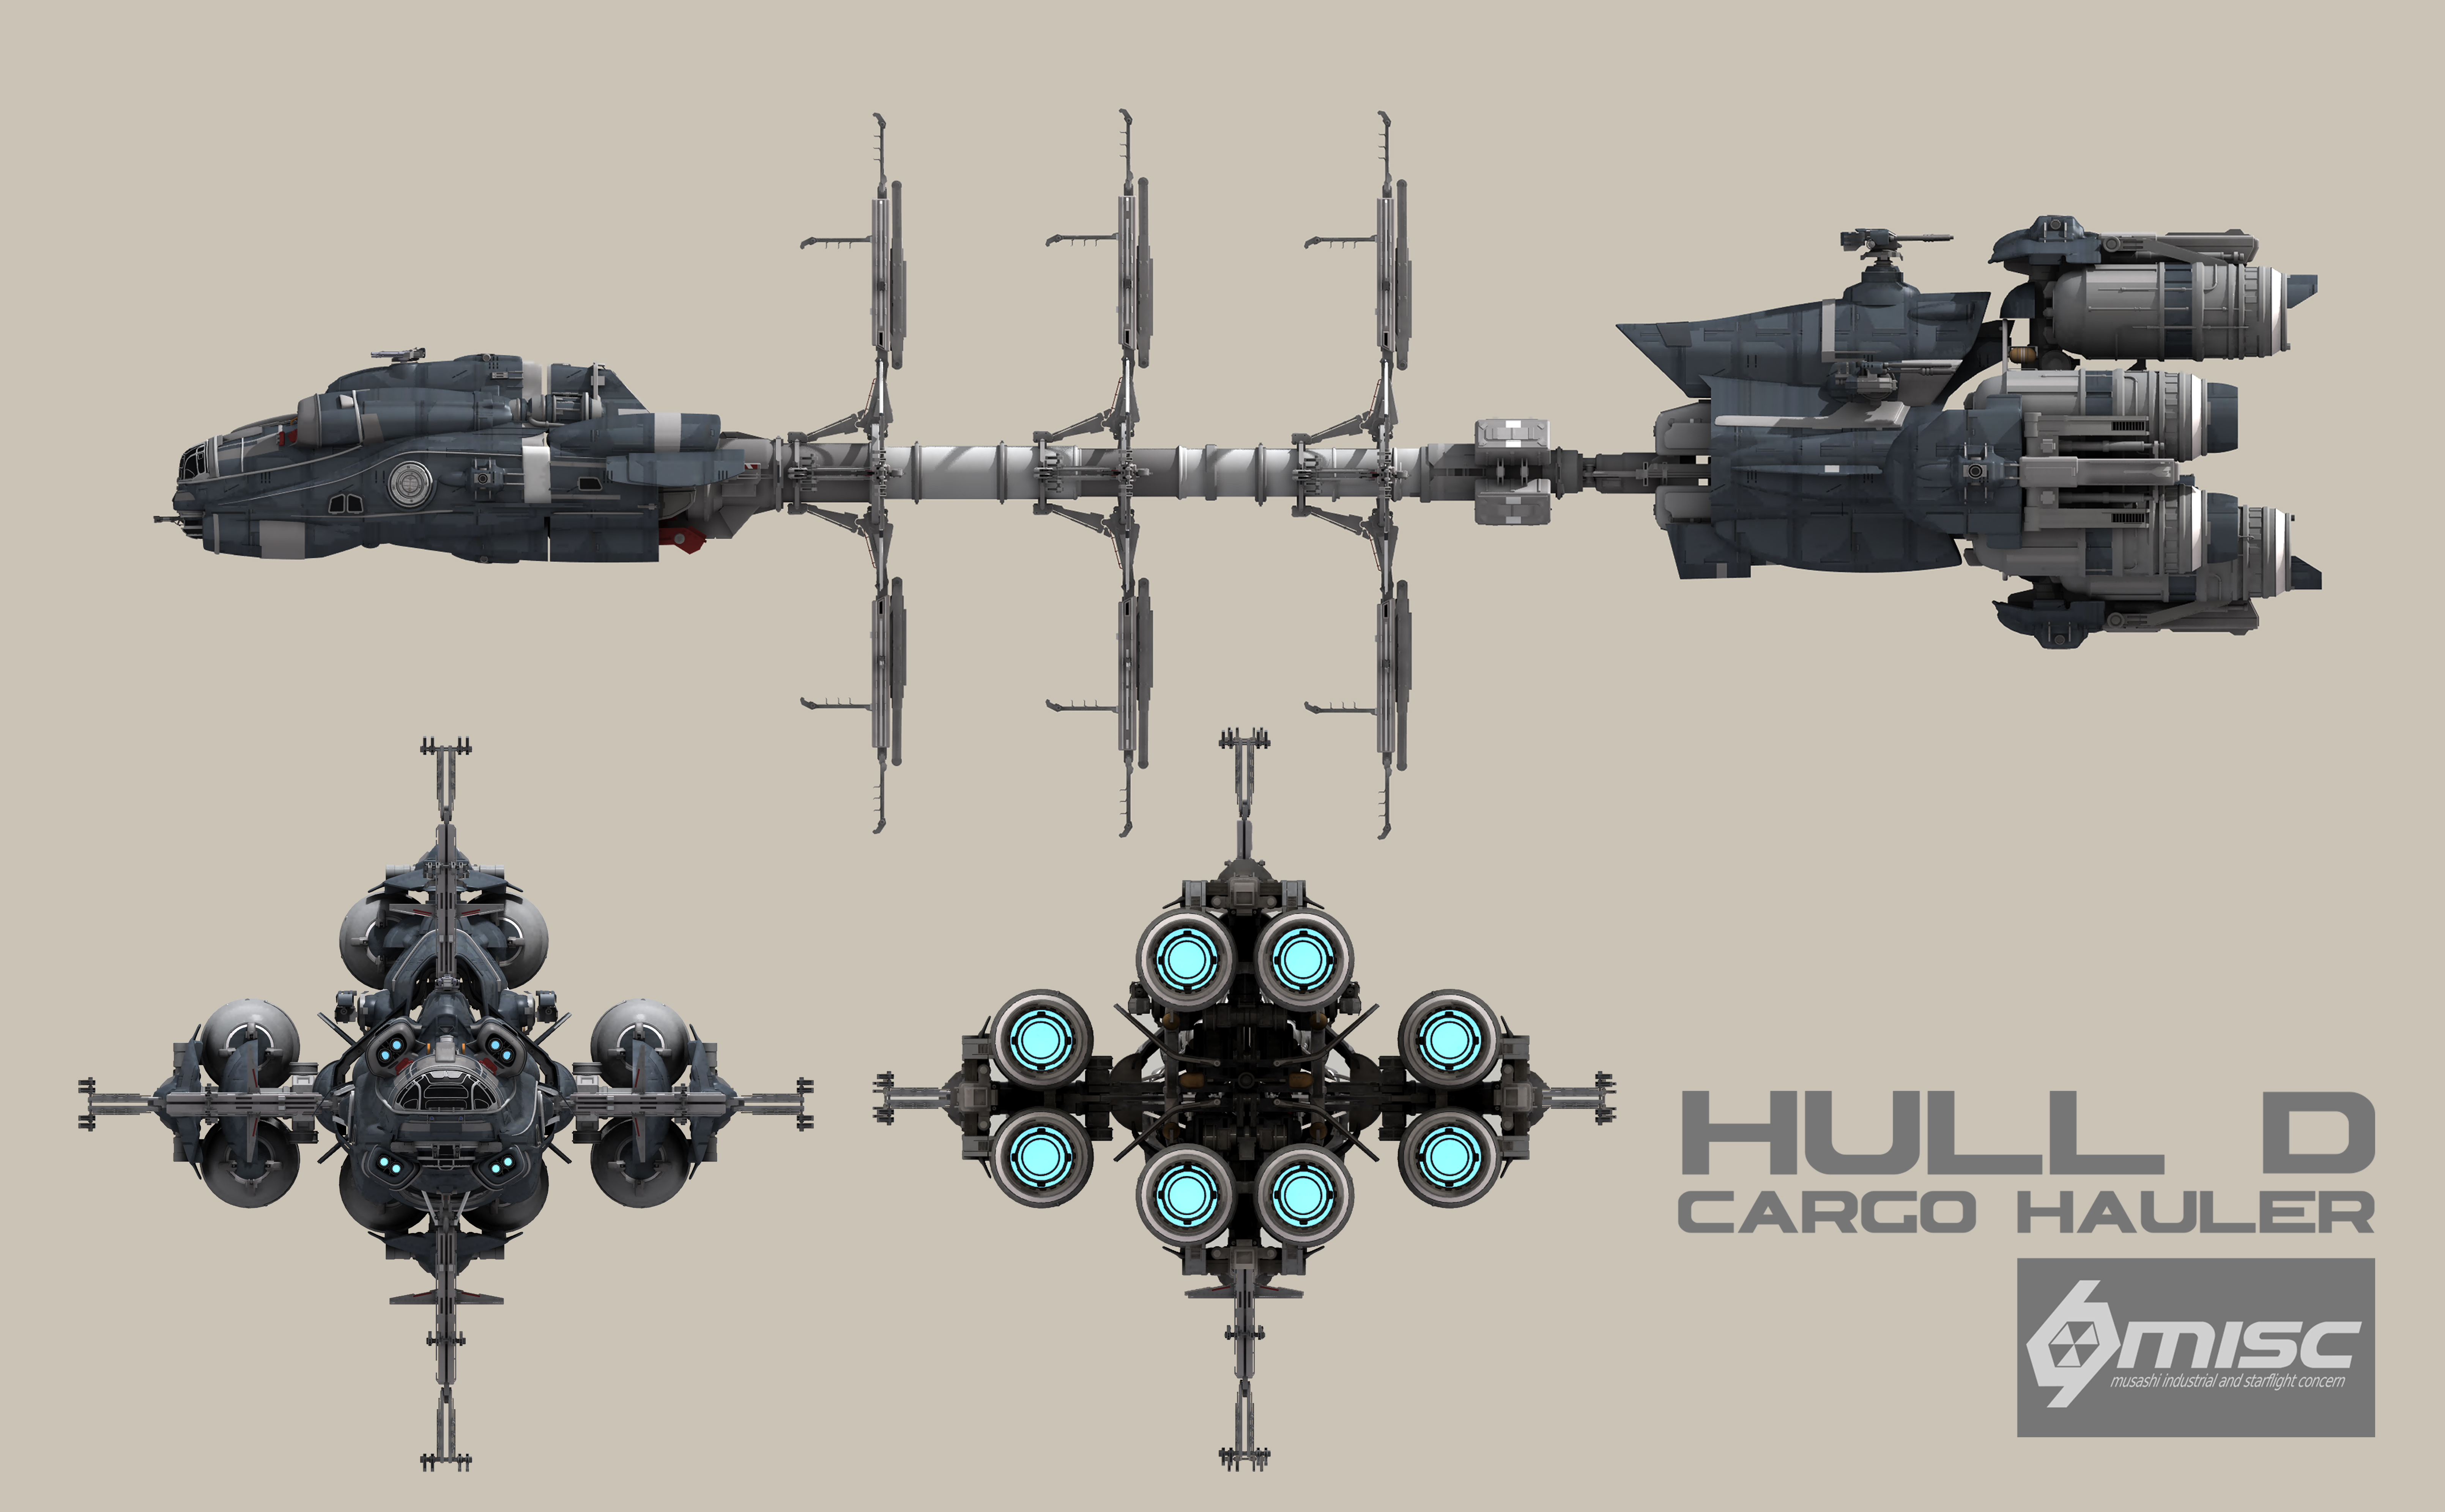 Production Factory Manufacturer Hull D Star Citizen Wiki